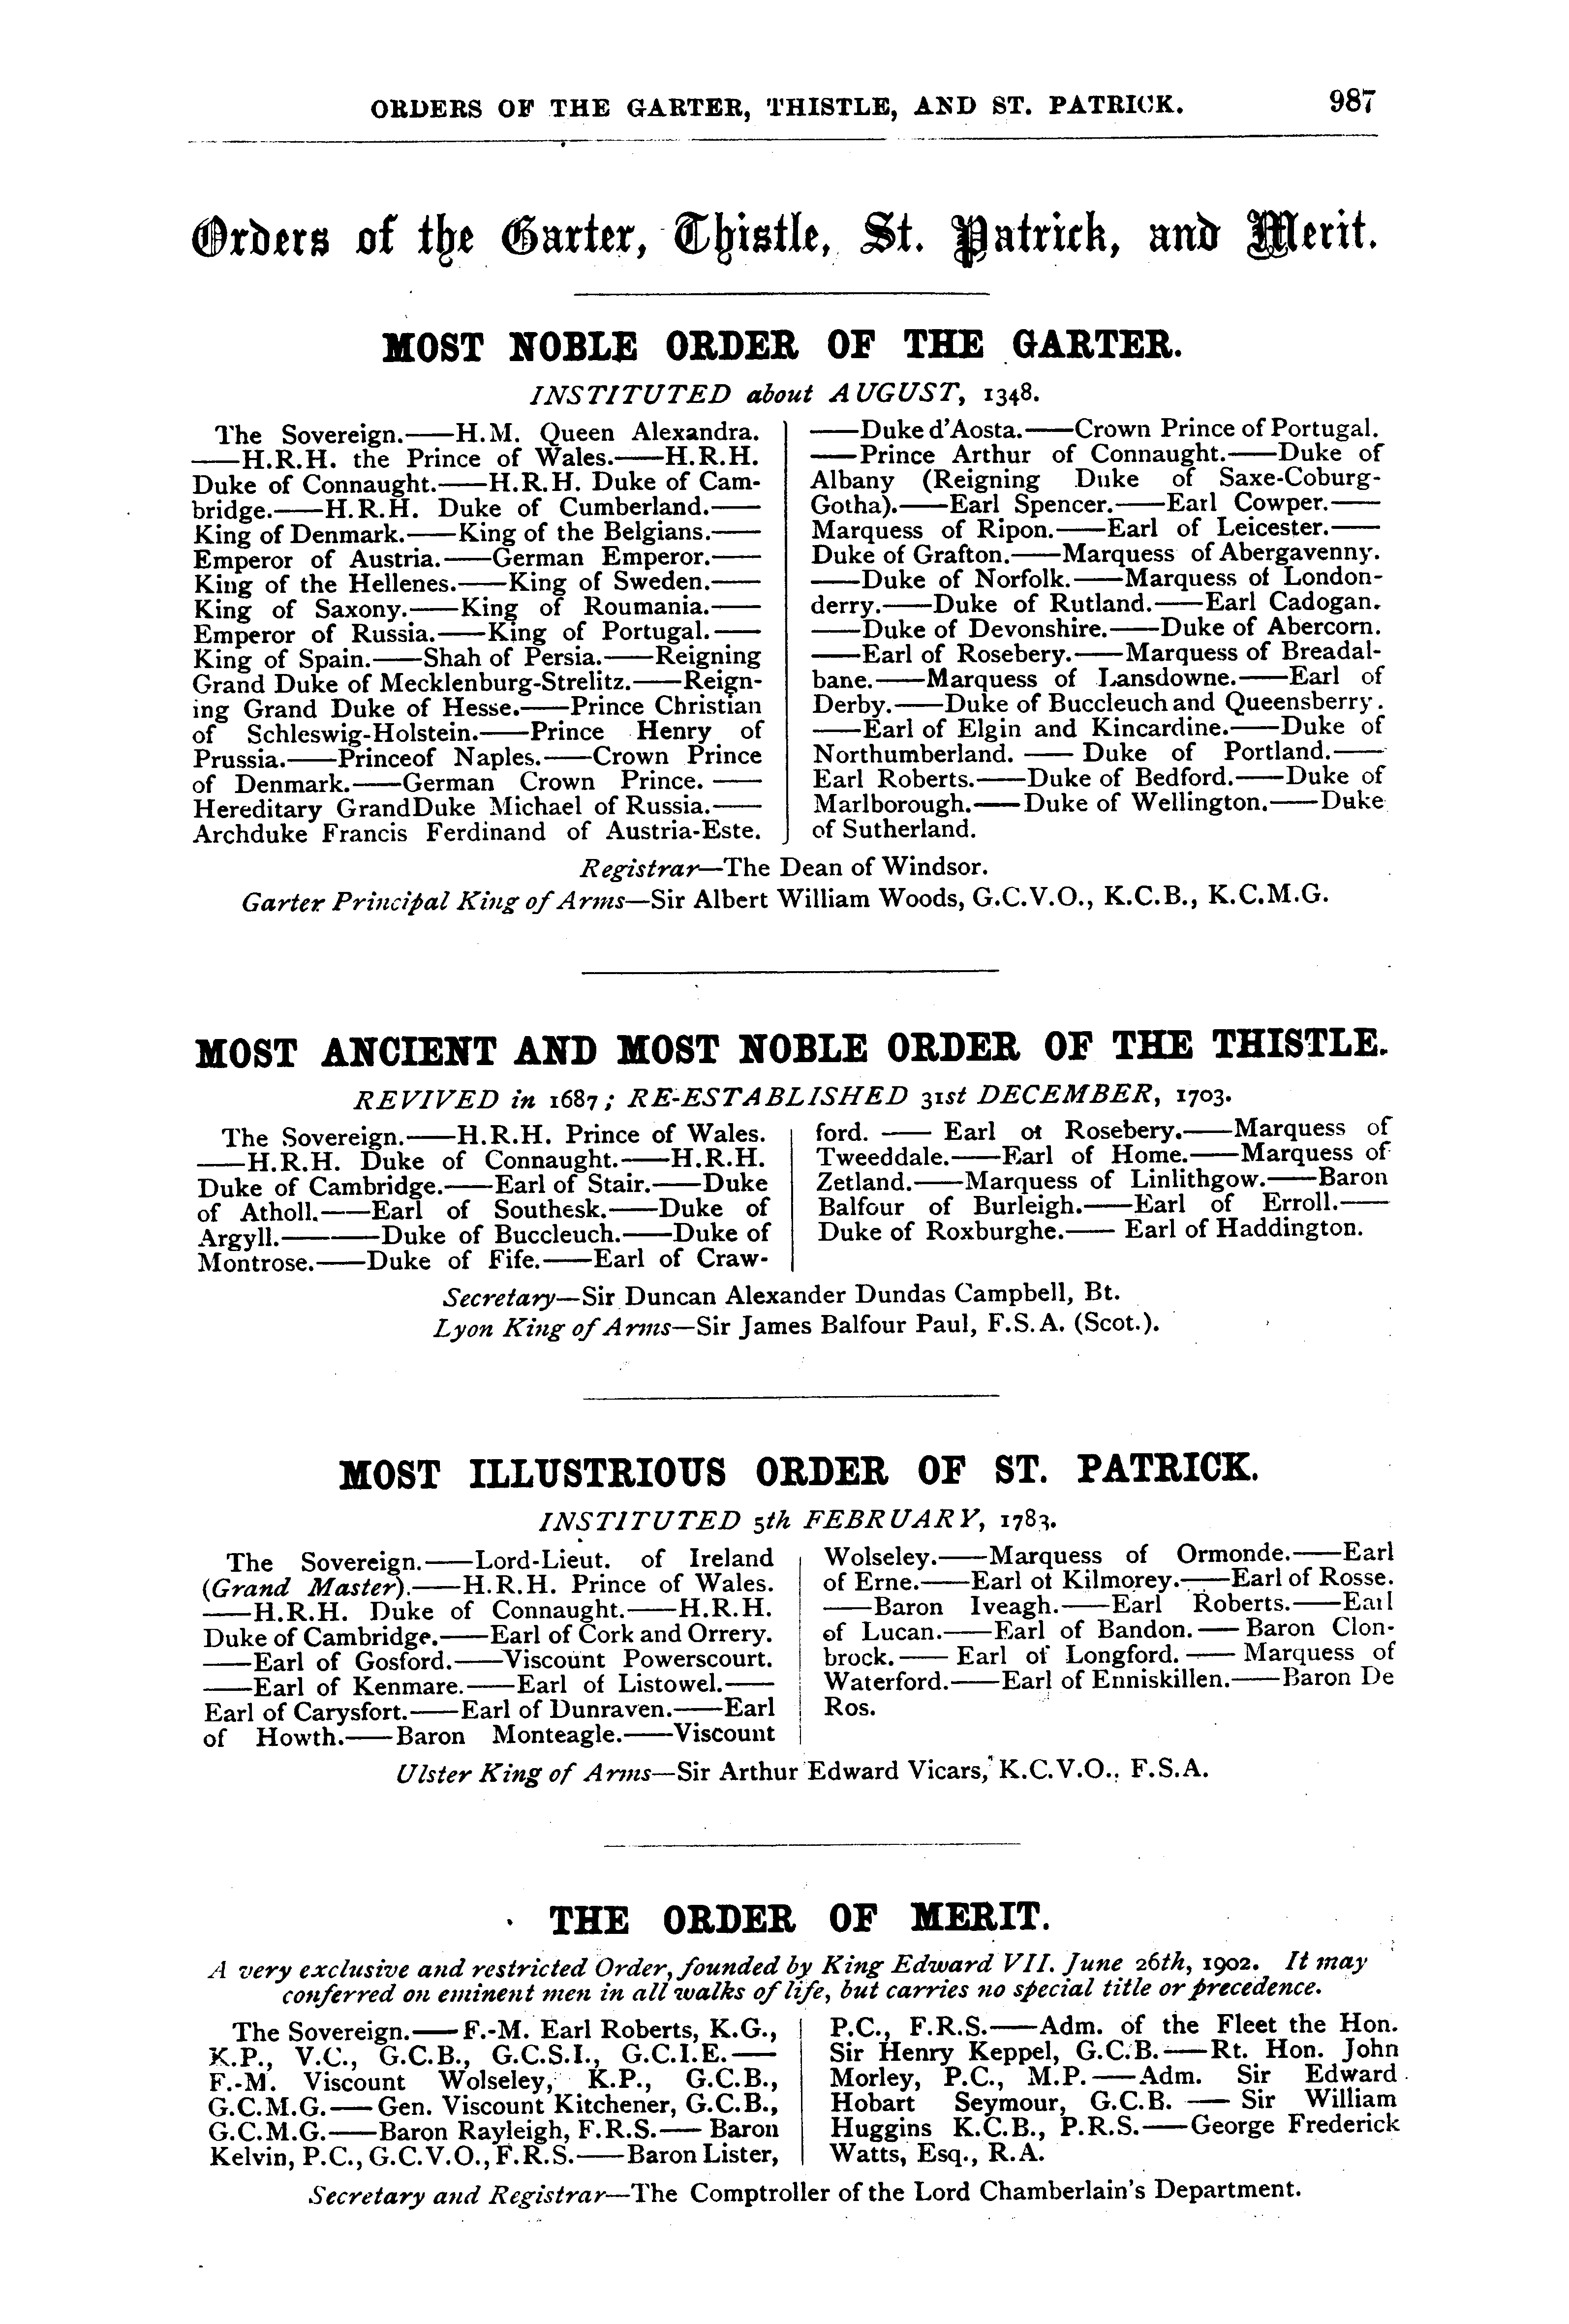 Debrett's Peerage, Baronetage, Knightage and Companionage, 1904 page 987 - click to open larger version in a new window